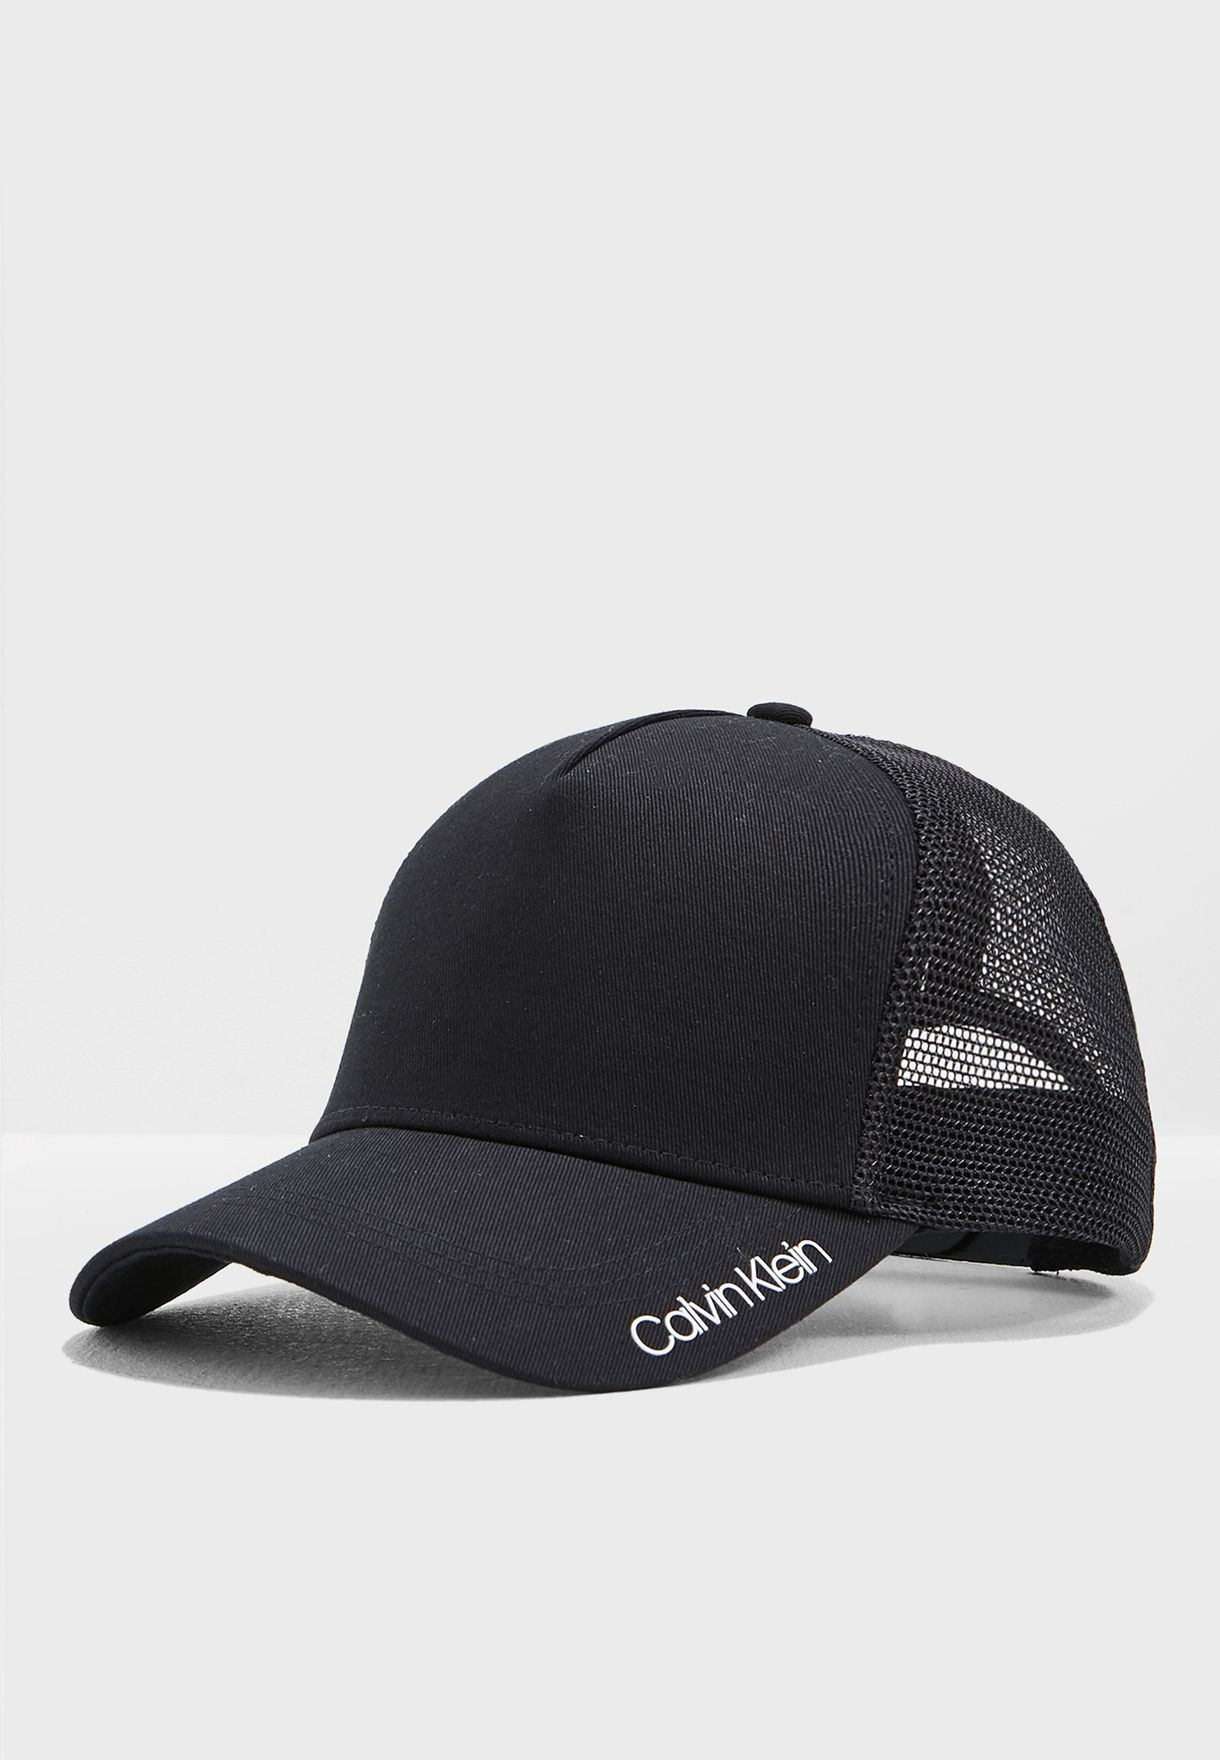 a03fe0a8d891e Shop Calvin Klein black Trucker Cap K50K504471 for Men in UAE ...